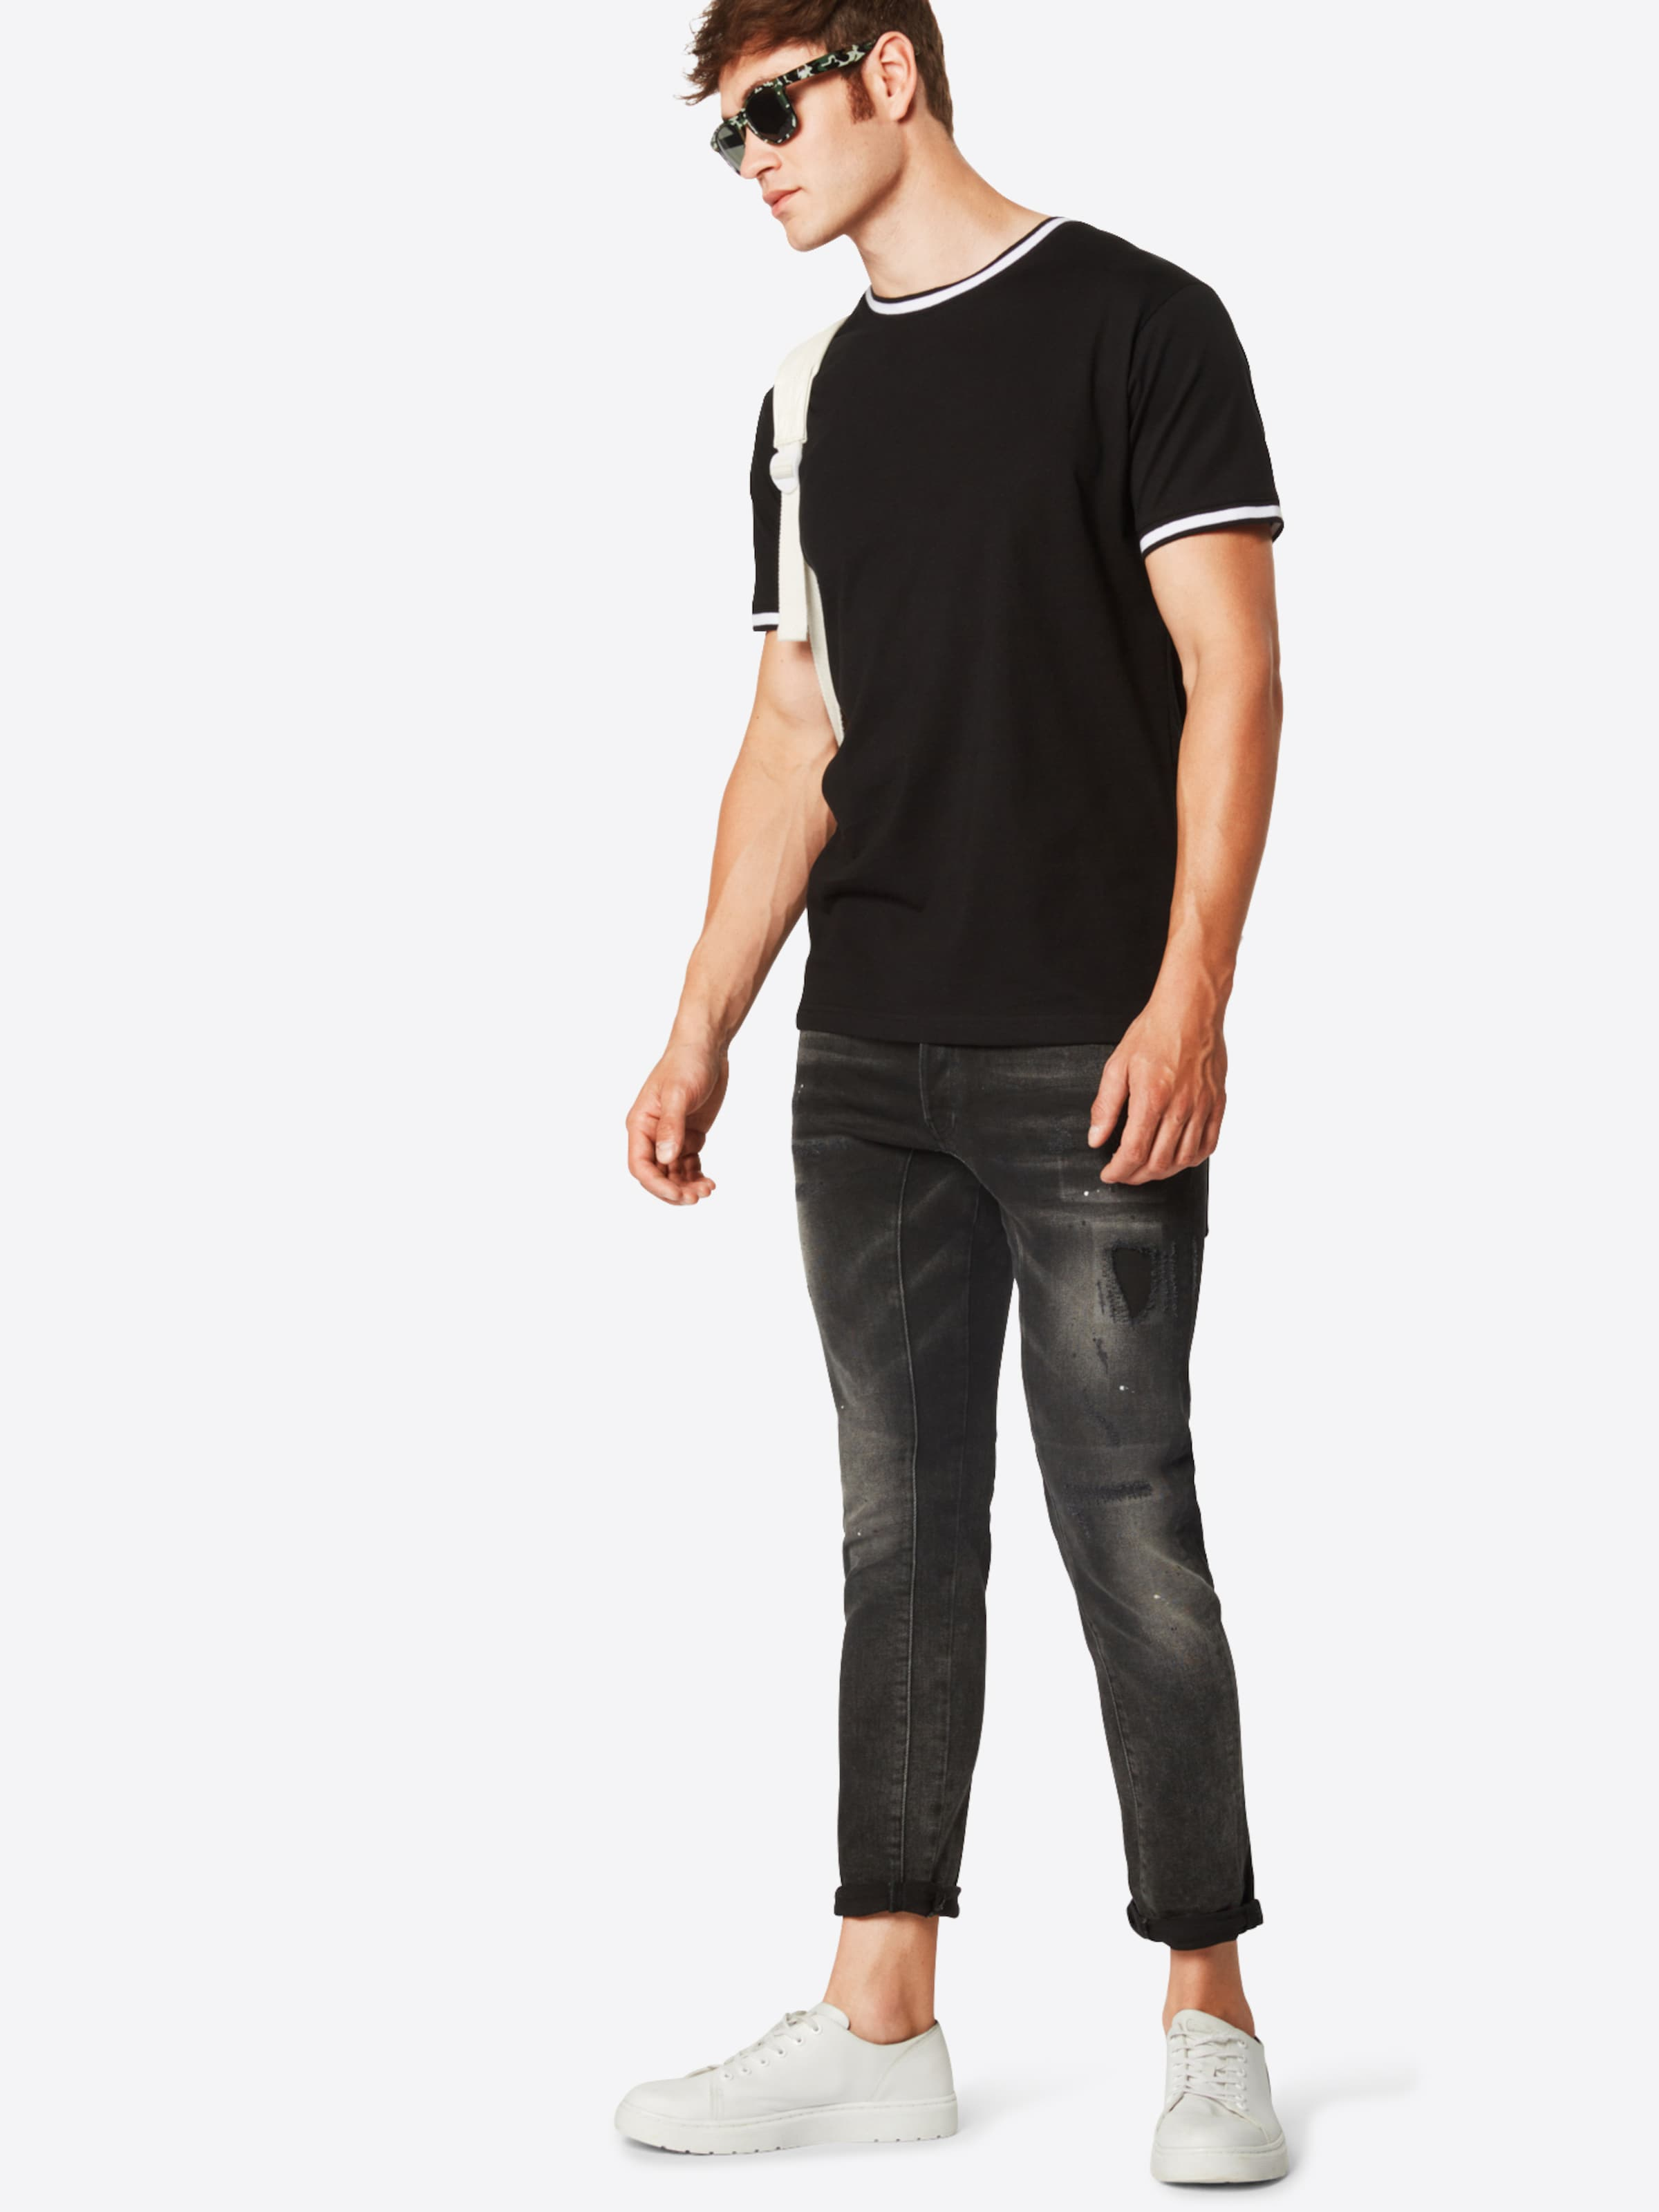 Classics Pocket 'collage NoirBlanc Tee' Urban shirt En T zVqUpSM